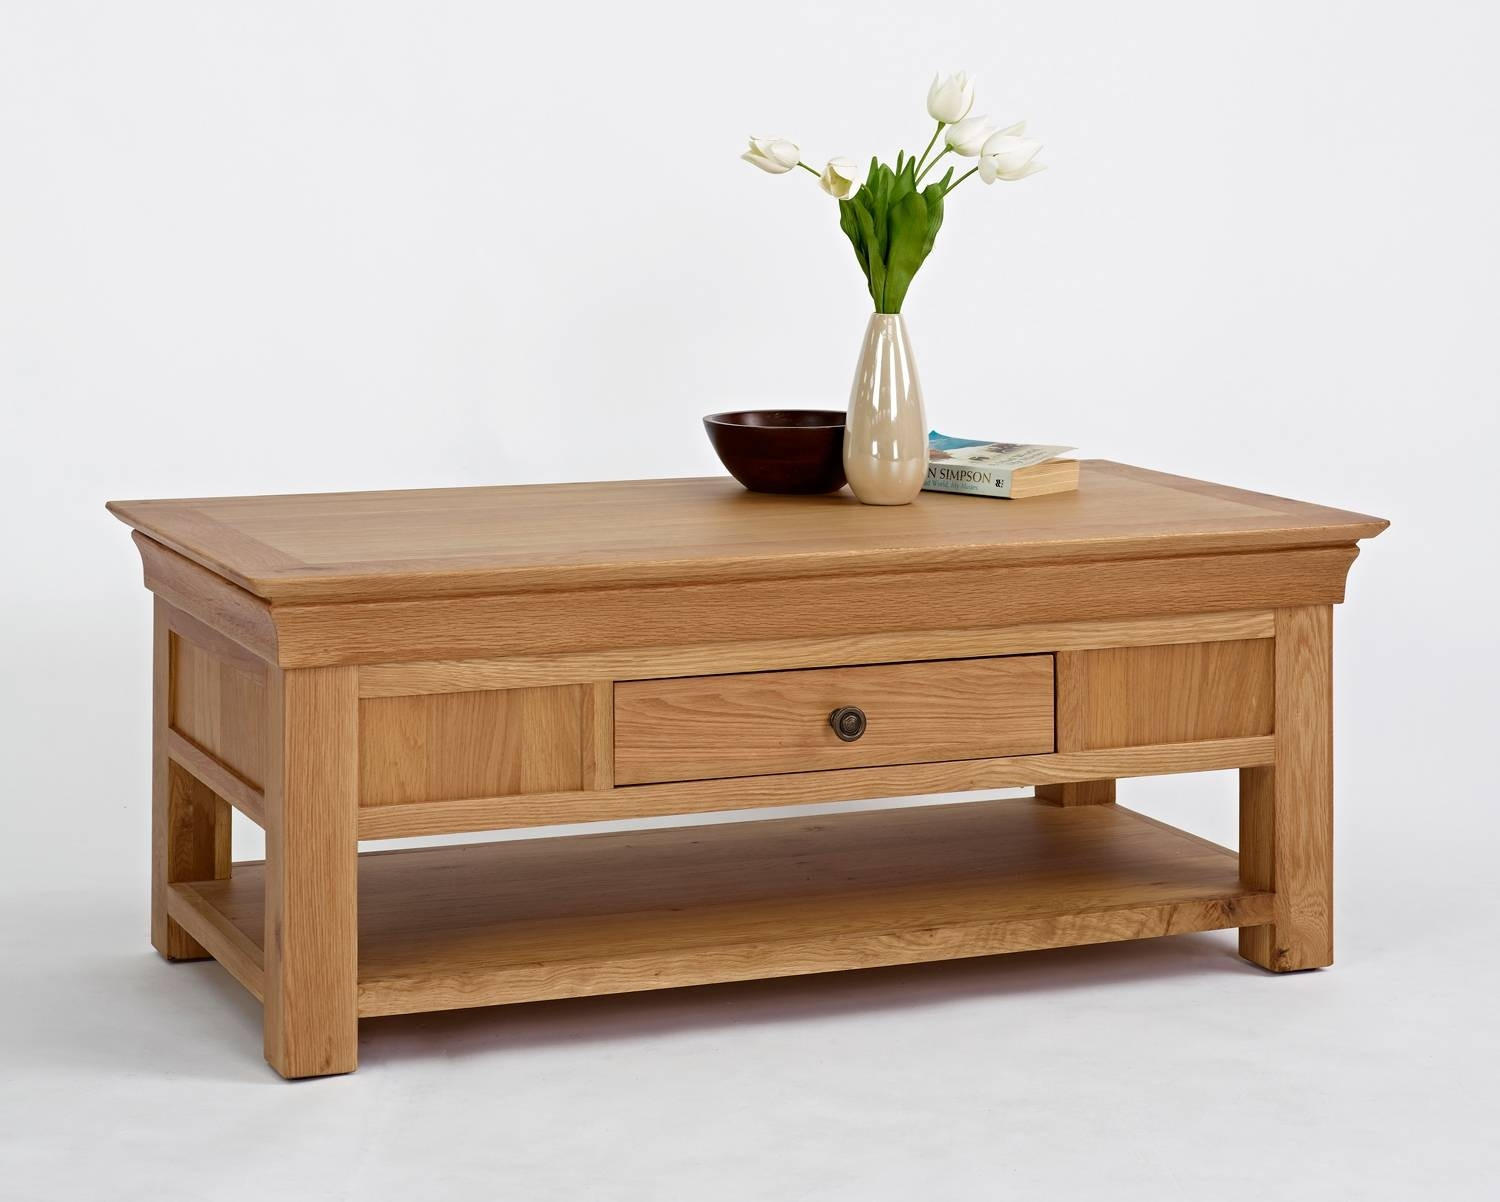 Bordeaux Oak Coffee Table With Shelf & Drawer with regard to Oak Coffee Table With Shelf (Image 1 of 15)